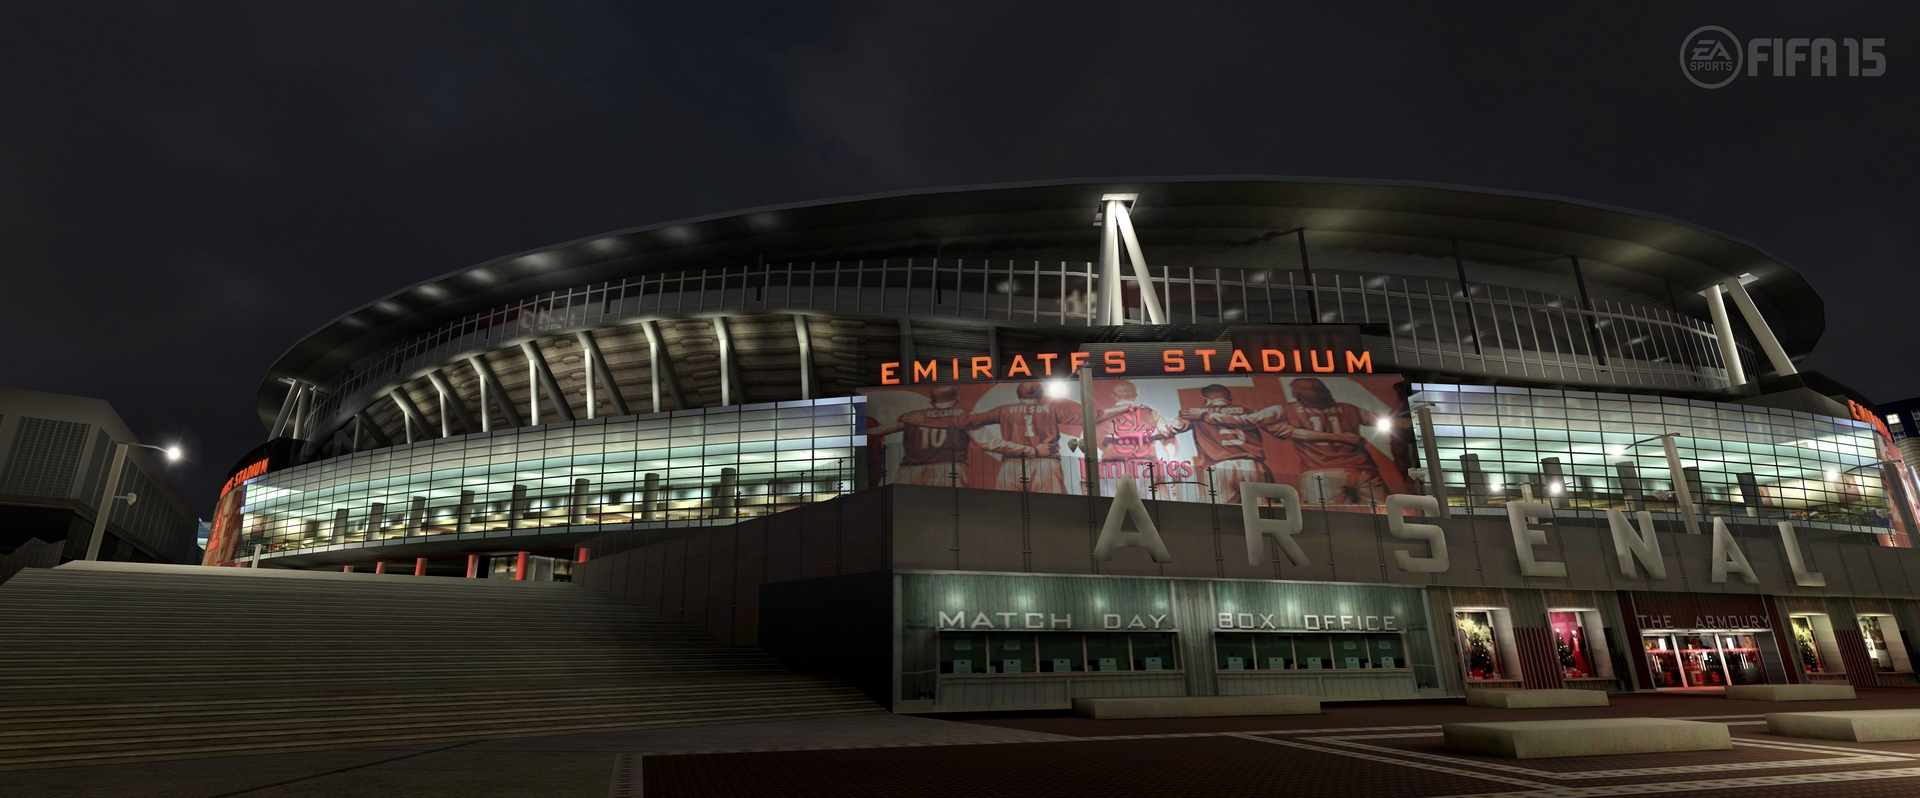 fifa-15-emirates-arsenal-outdoor